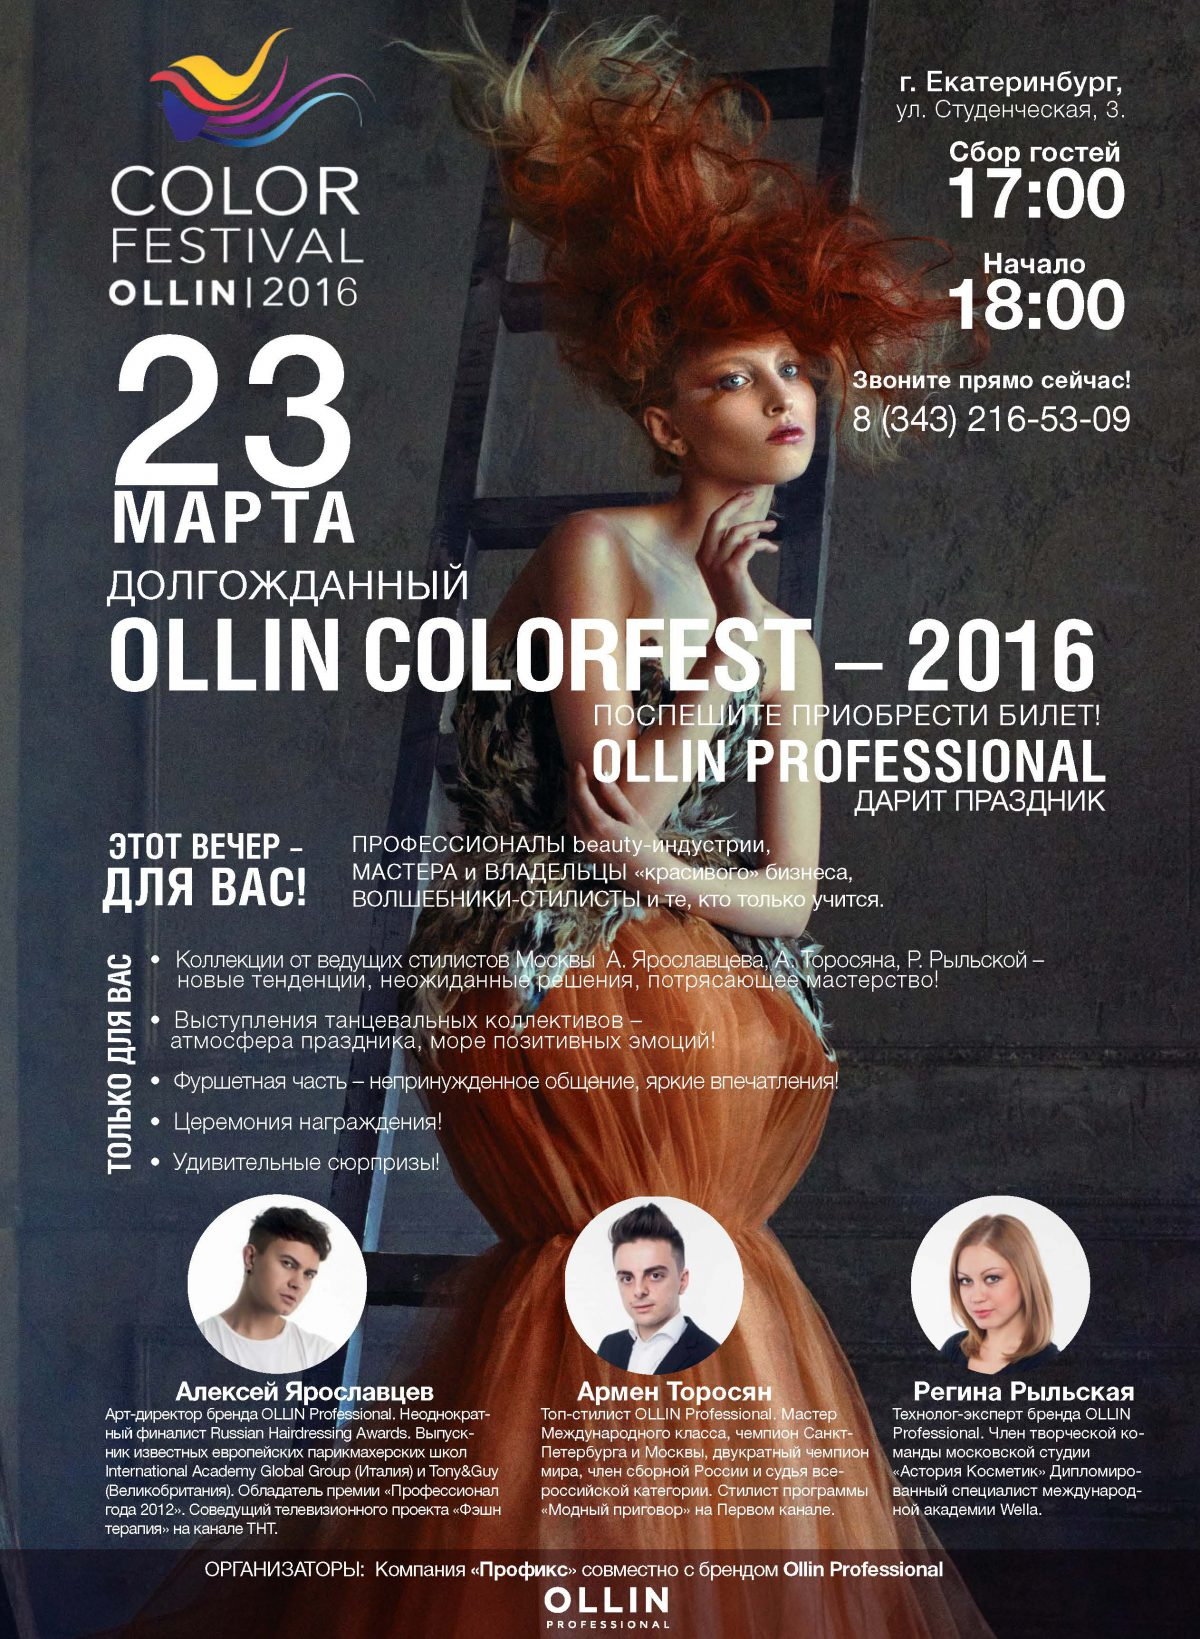 Ollin ColorFest